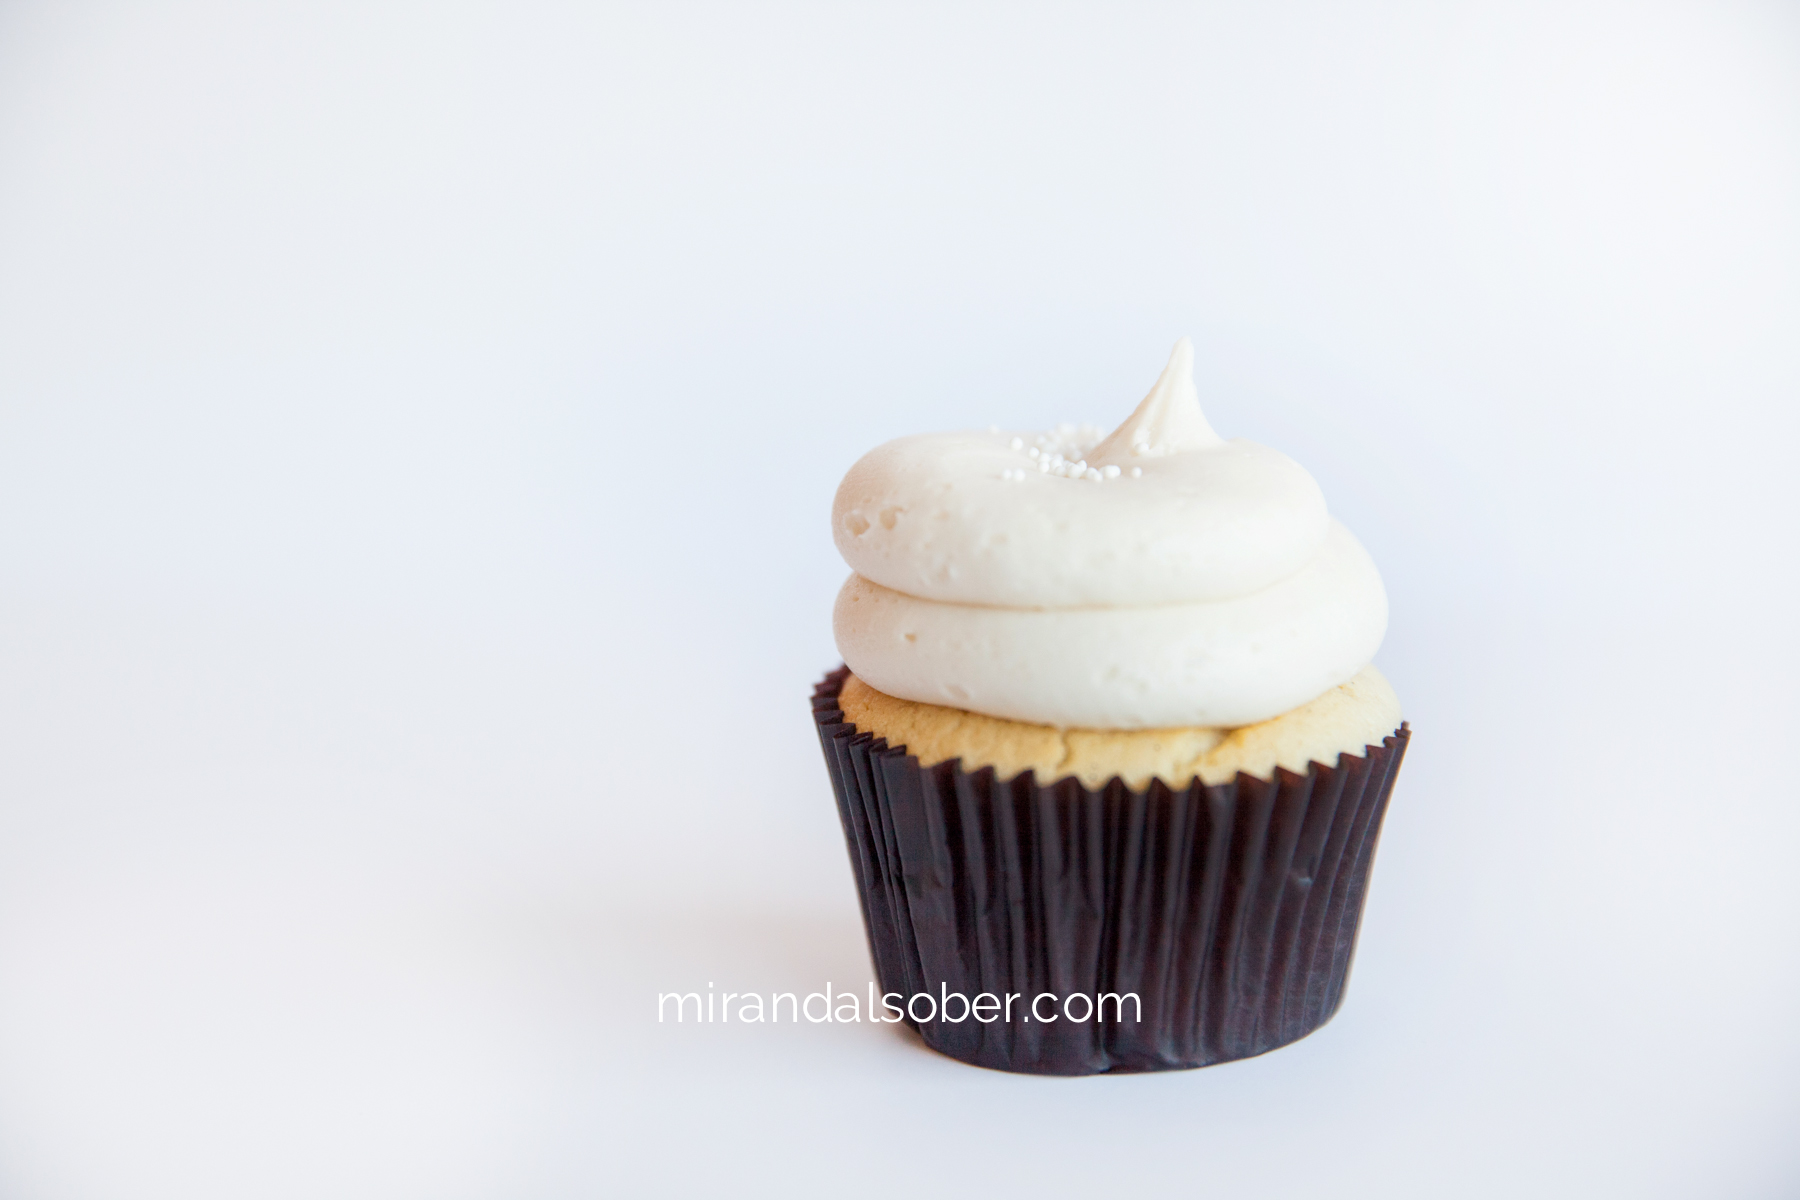 Butter Cream Cupcakery, Fort Collins CO Miranda L. Sober Photography, commercial photographer, Fort Collins desserts